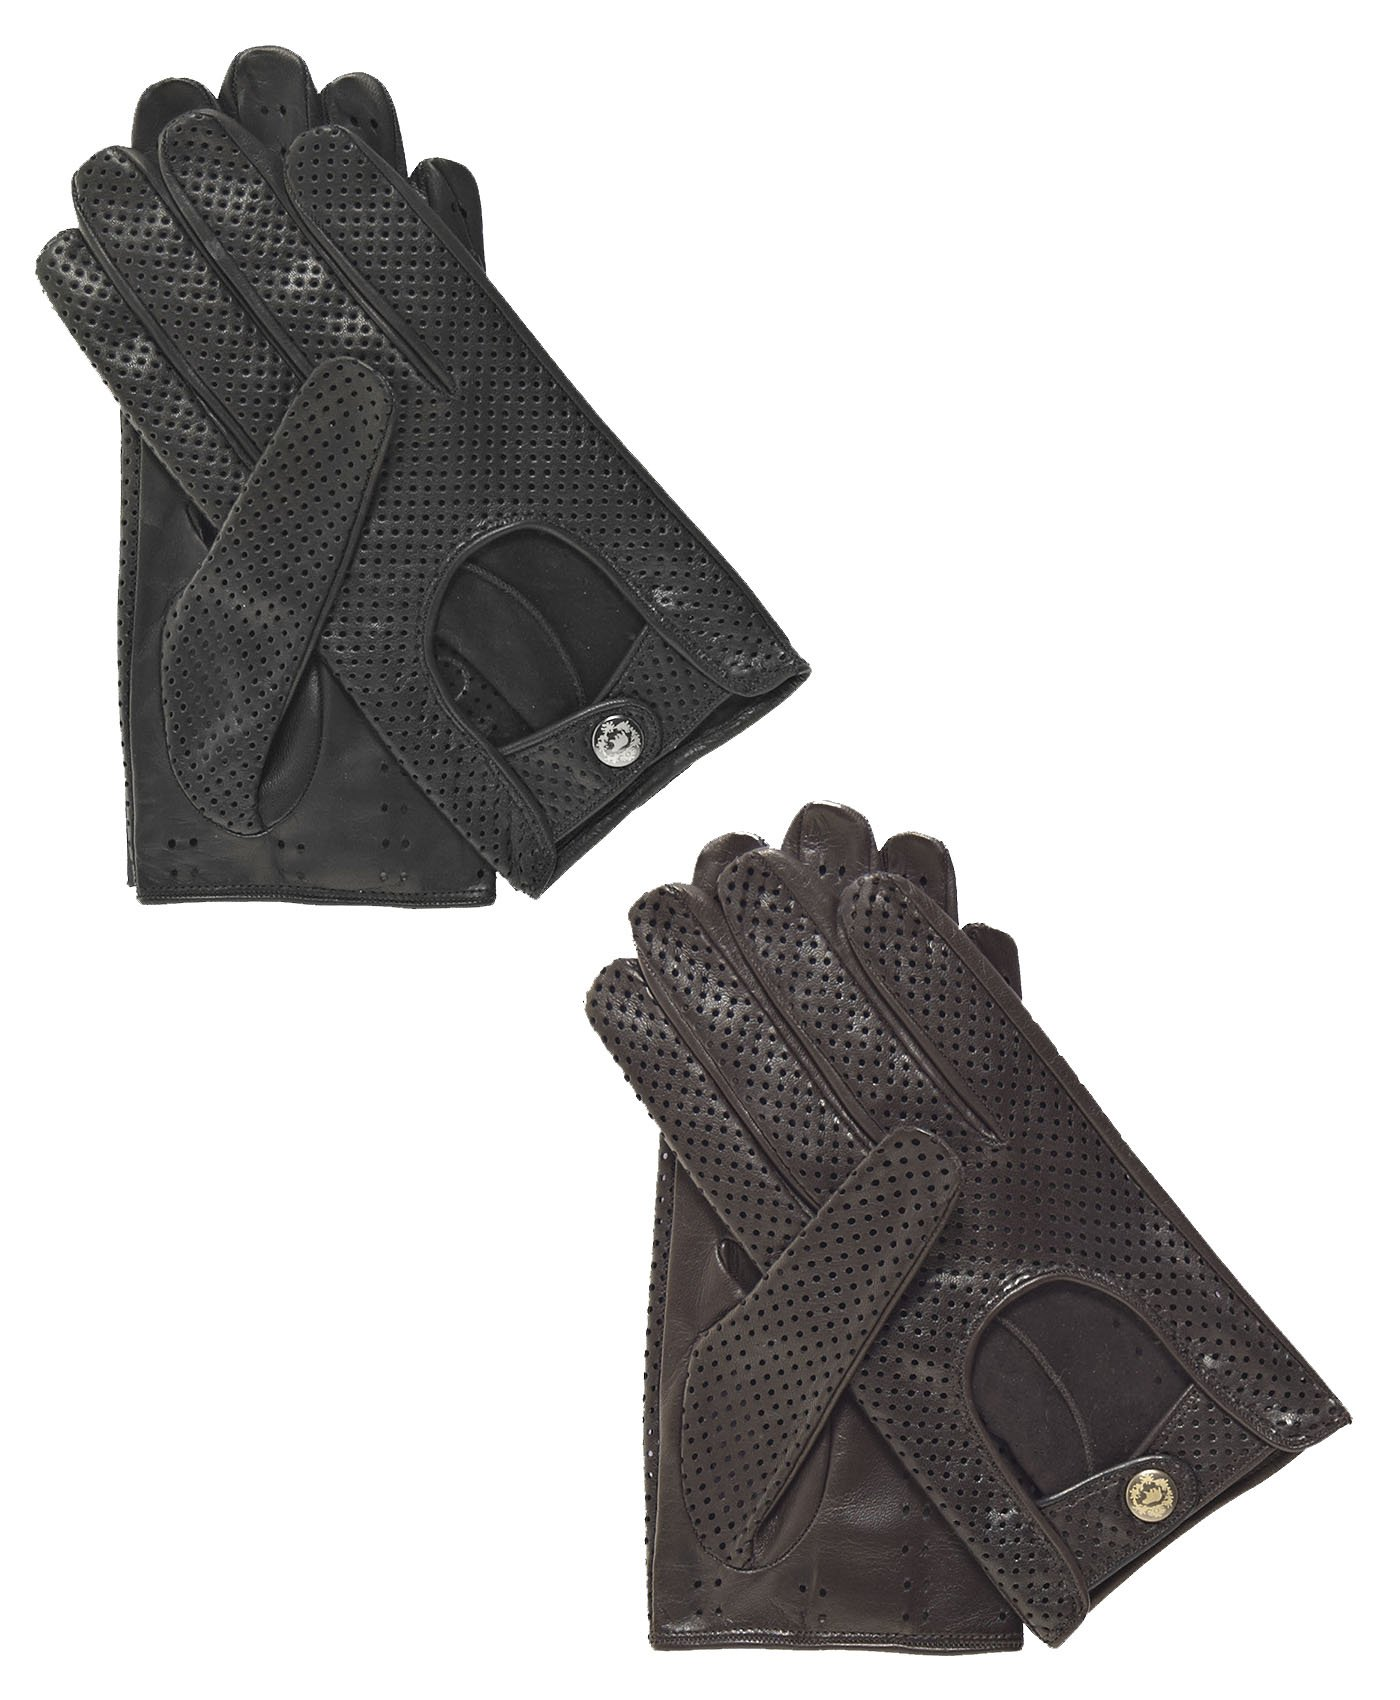 Fratelli Orsini Men's Ventilated Leather Driving Gloves Size 9 Color Brown